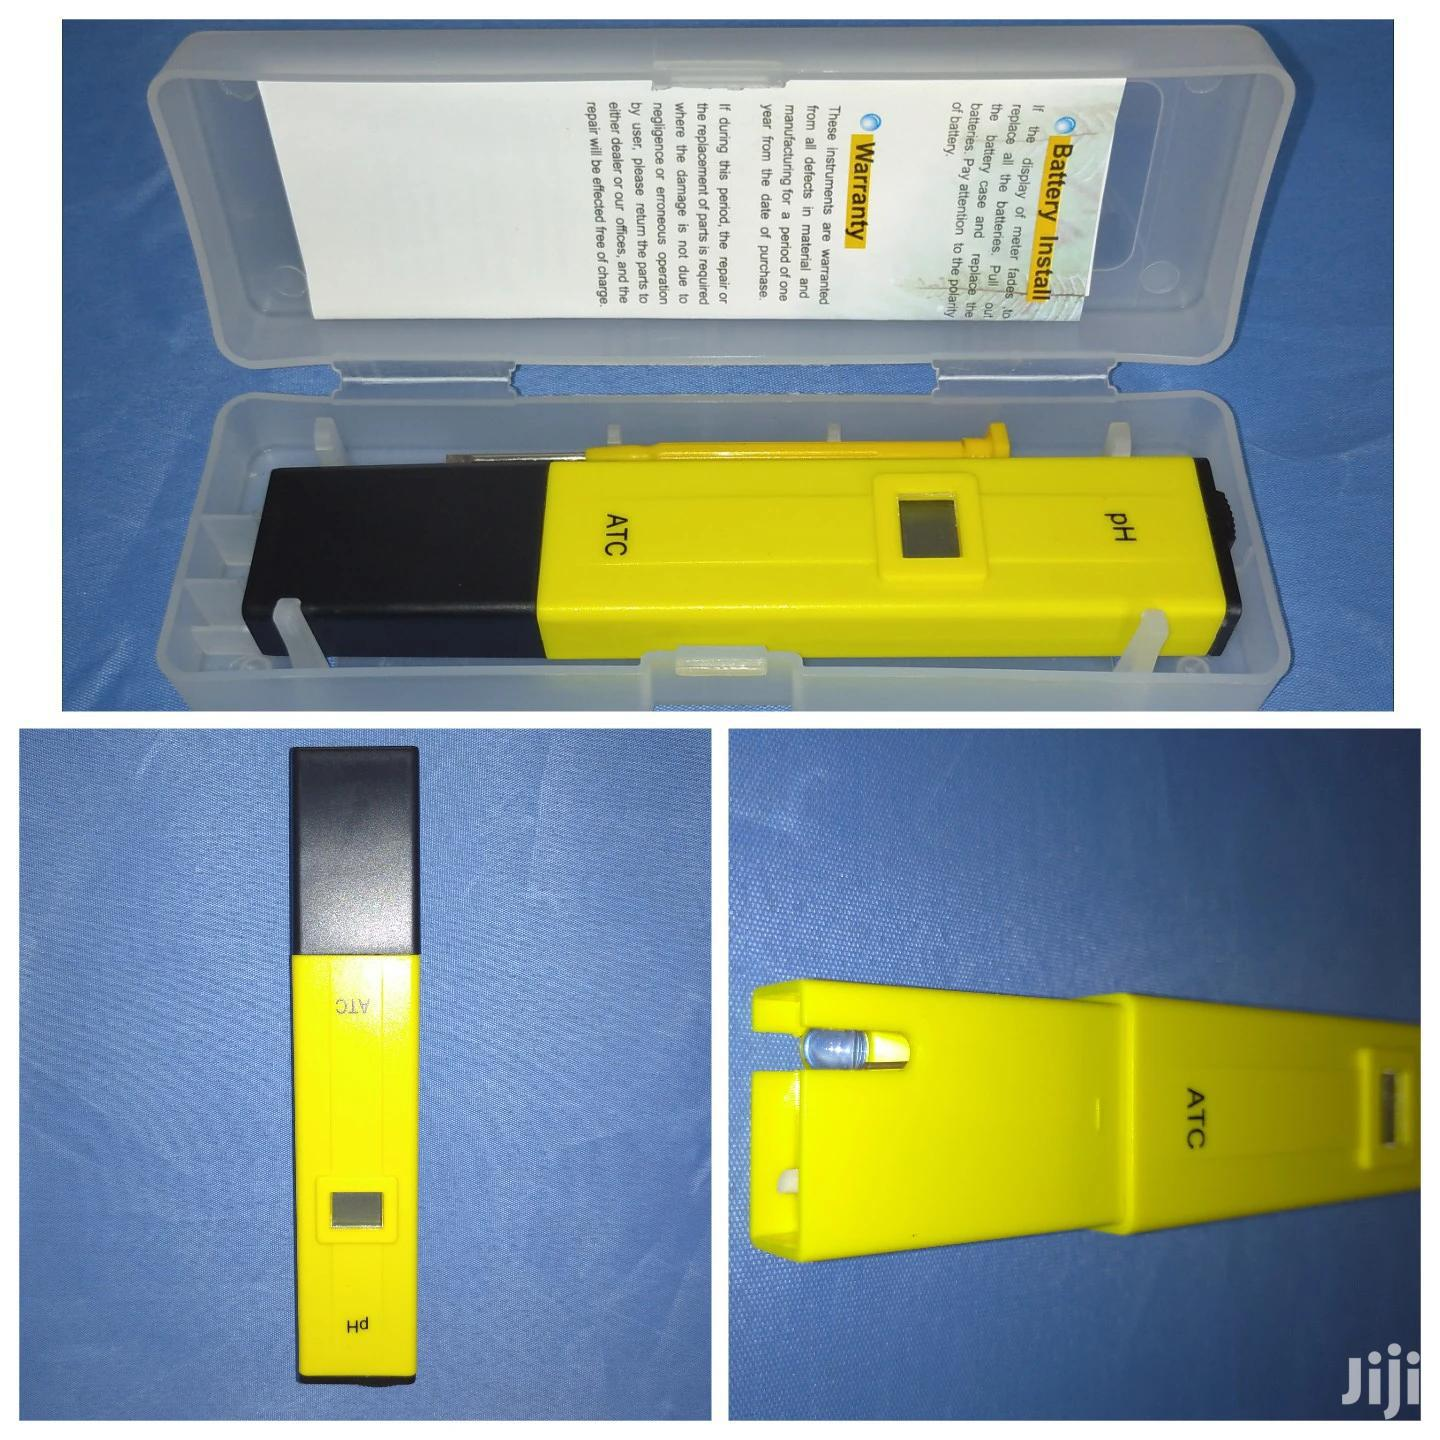 Archive: Ph Meter Device